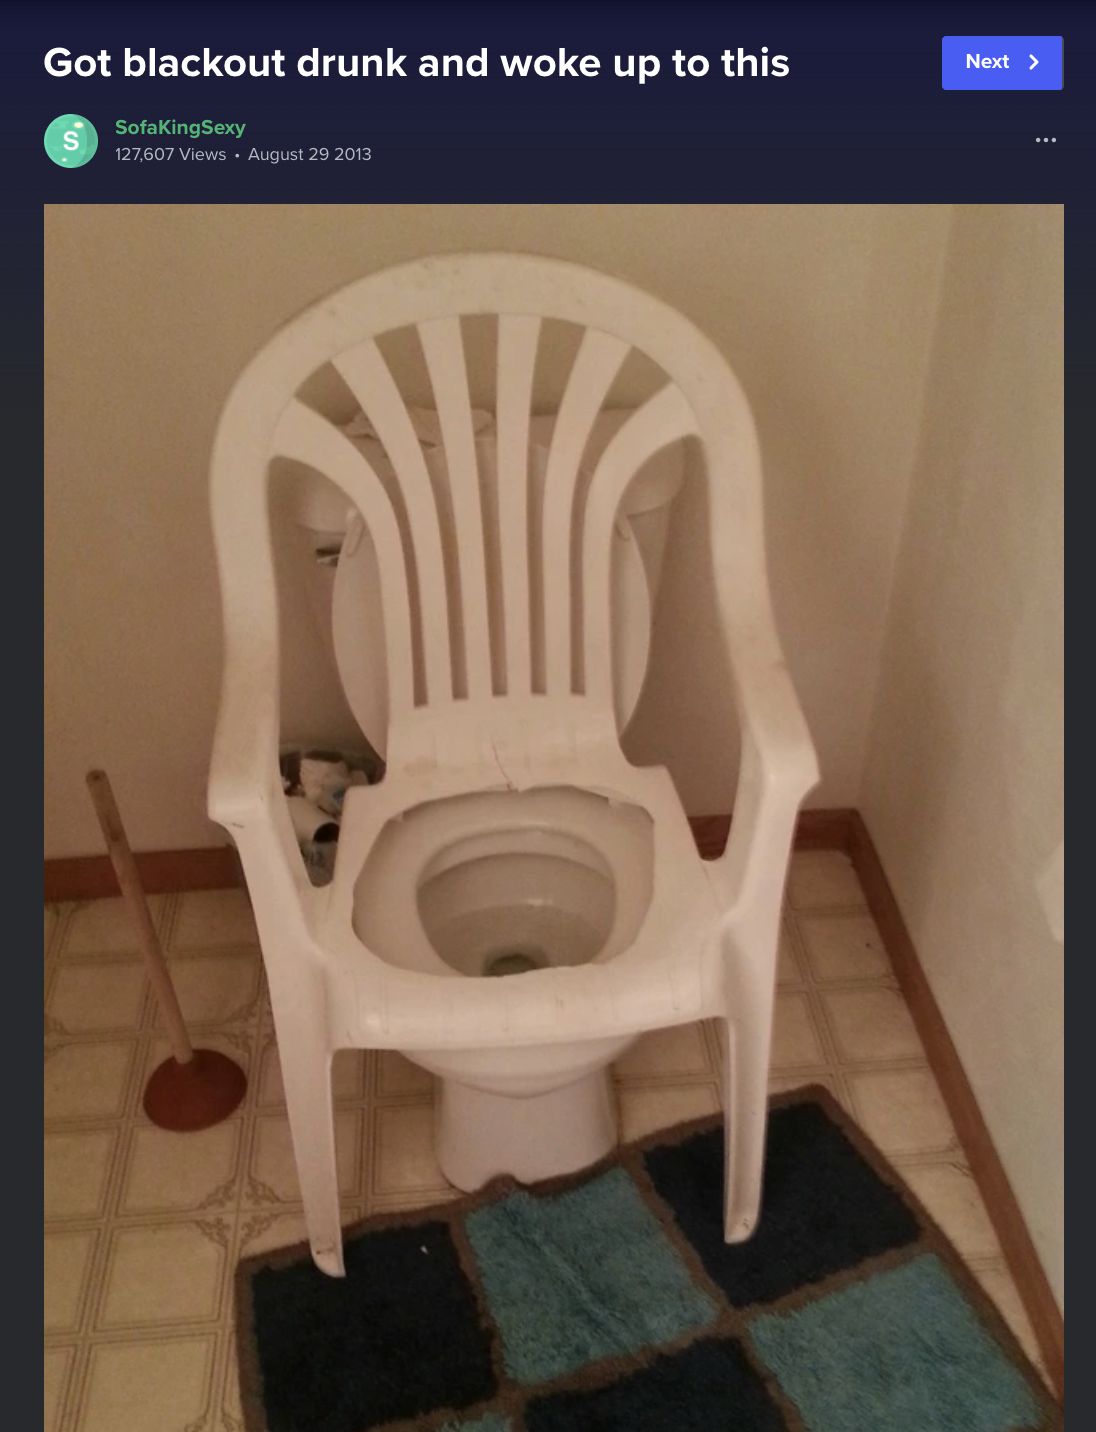 """picture of a plastic chair around a toilet with the caption """"Got blackout drunk and woke up to this"""""""